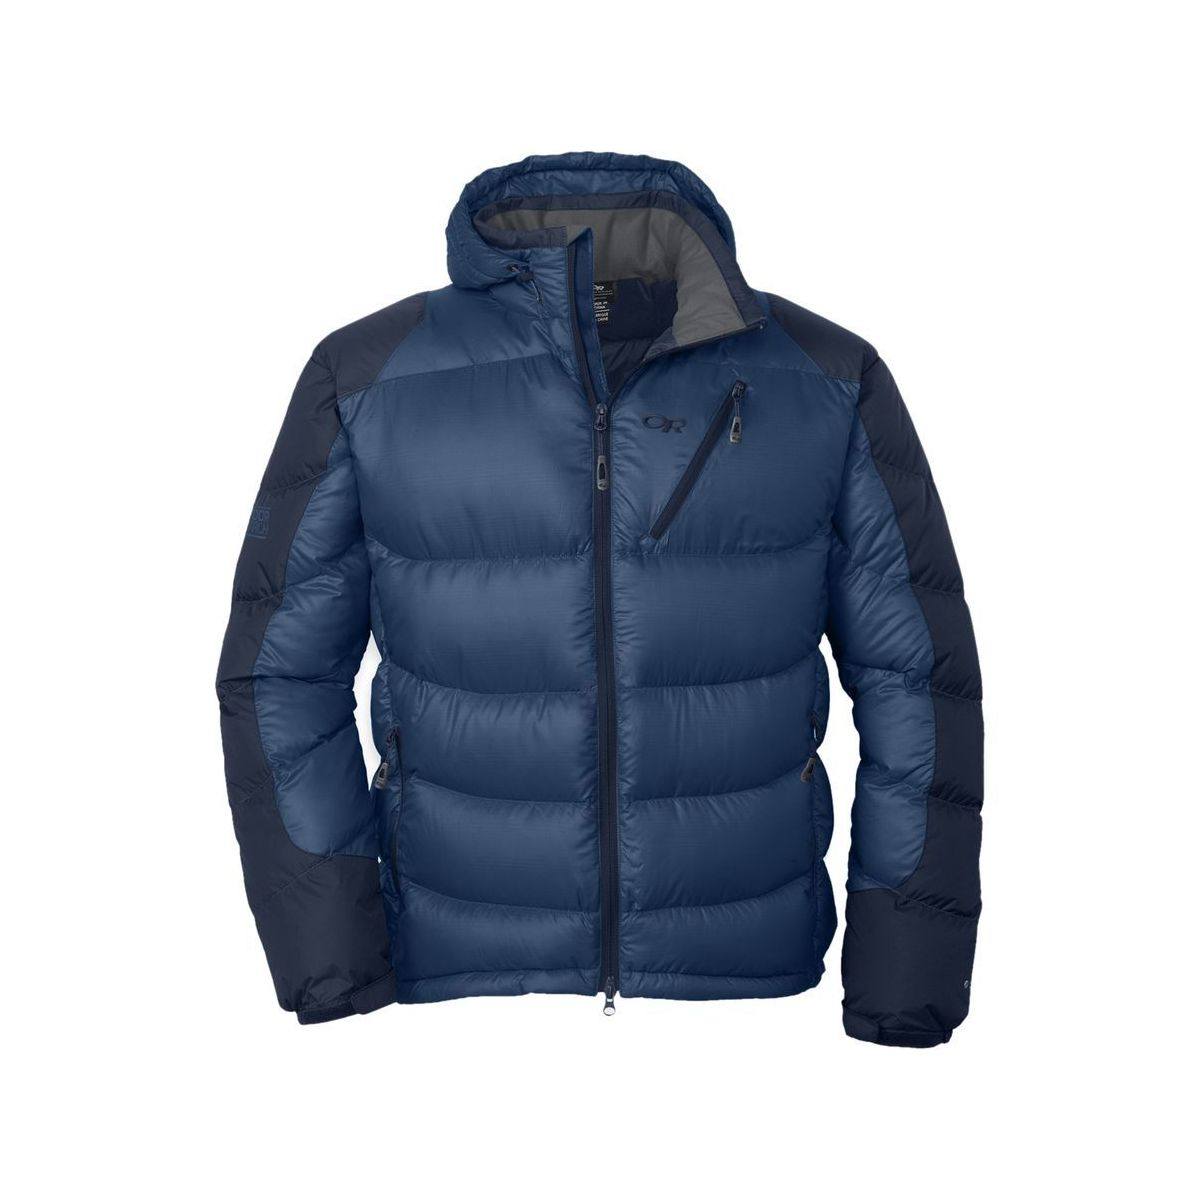 Outdoor Research Virtuoso Down Jacket - Men